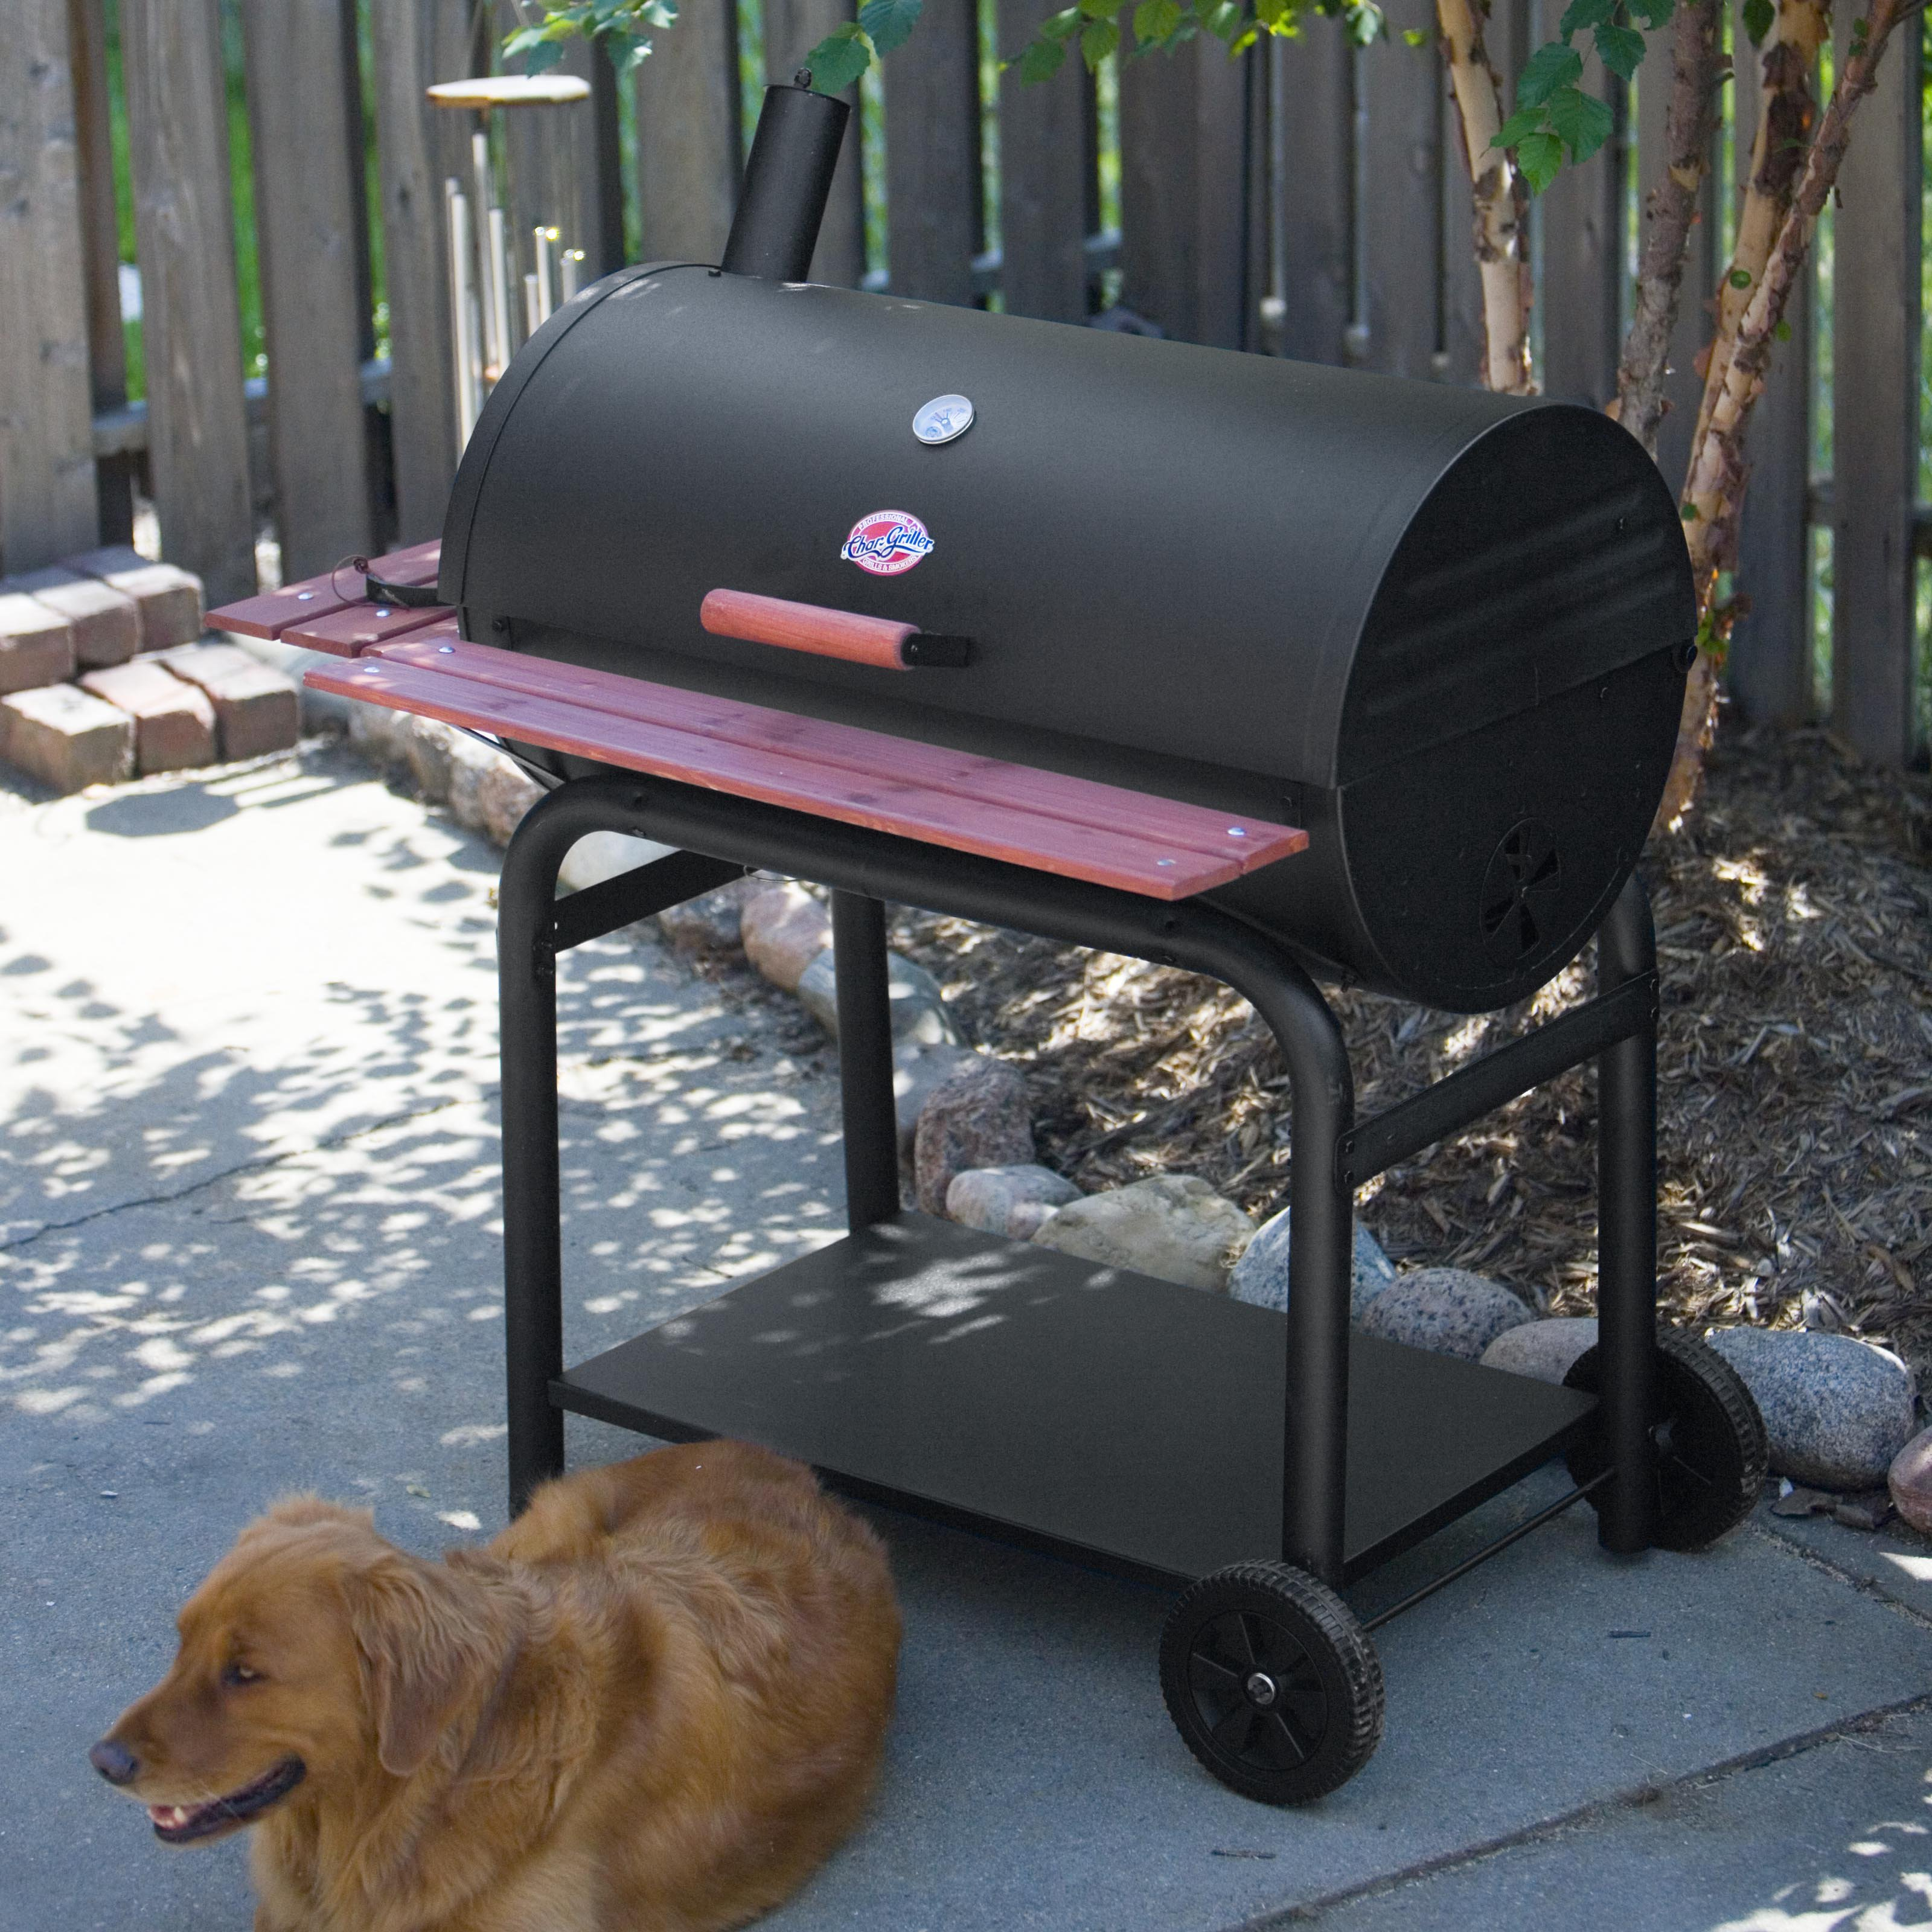 Char-Griller Outlaw Charcoal Grill by A and J Mfg (Char-Griller)